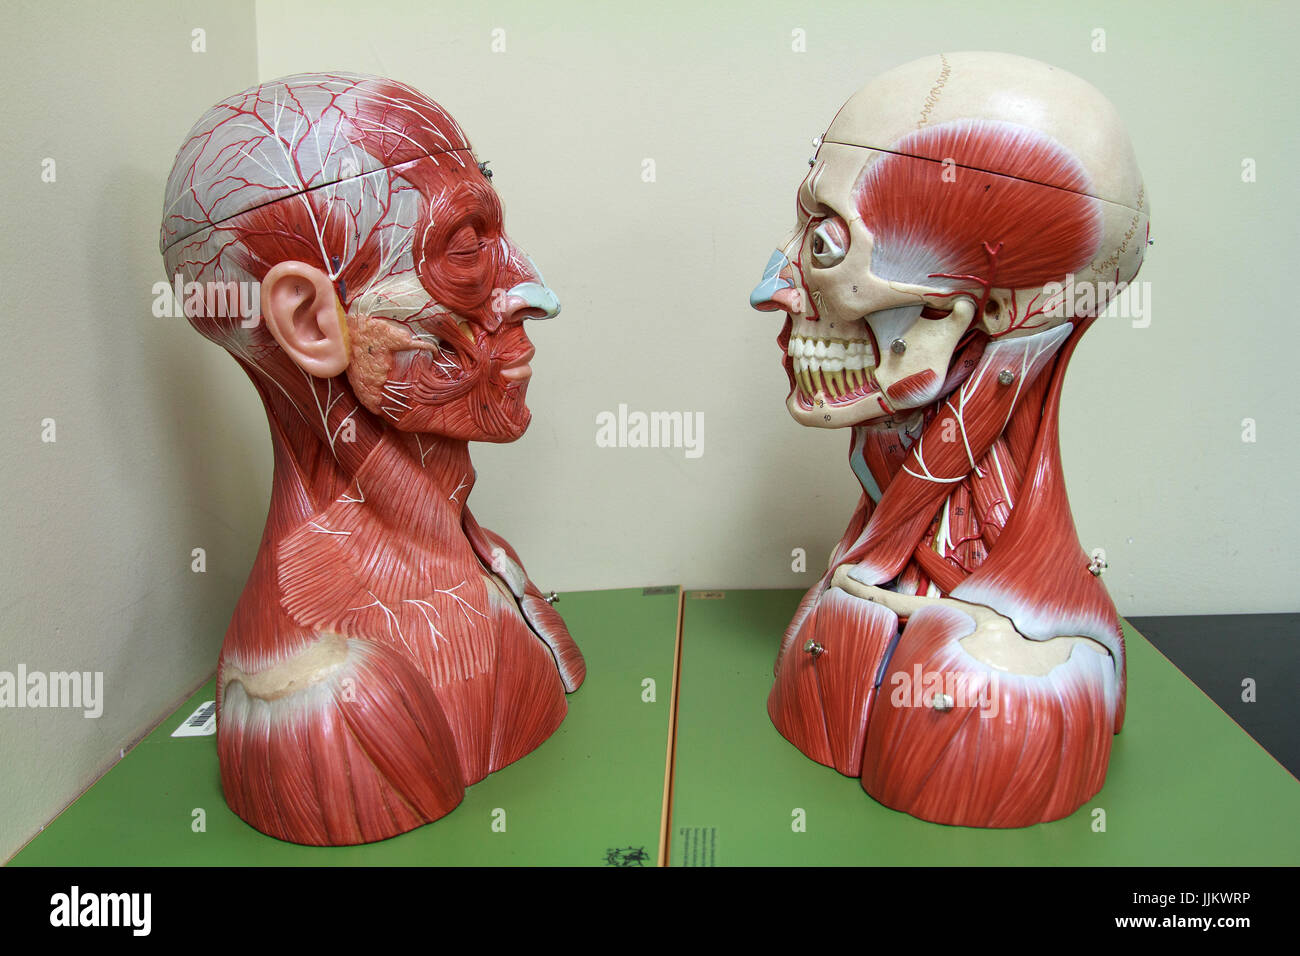 Two Anatomy Models of Head showing muscles - Stock Image